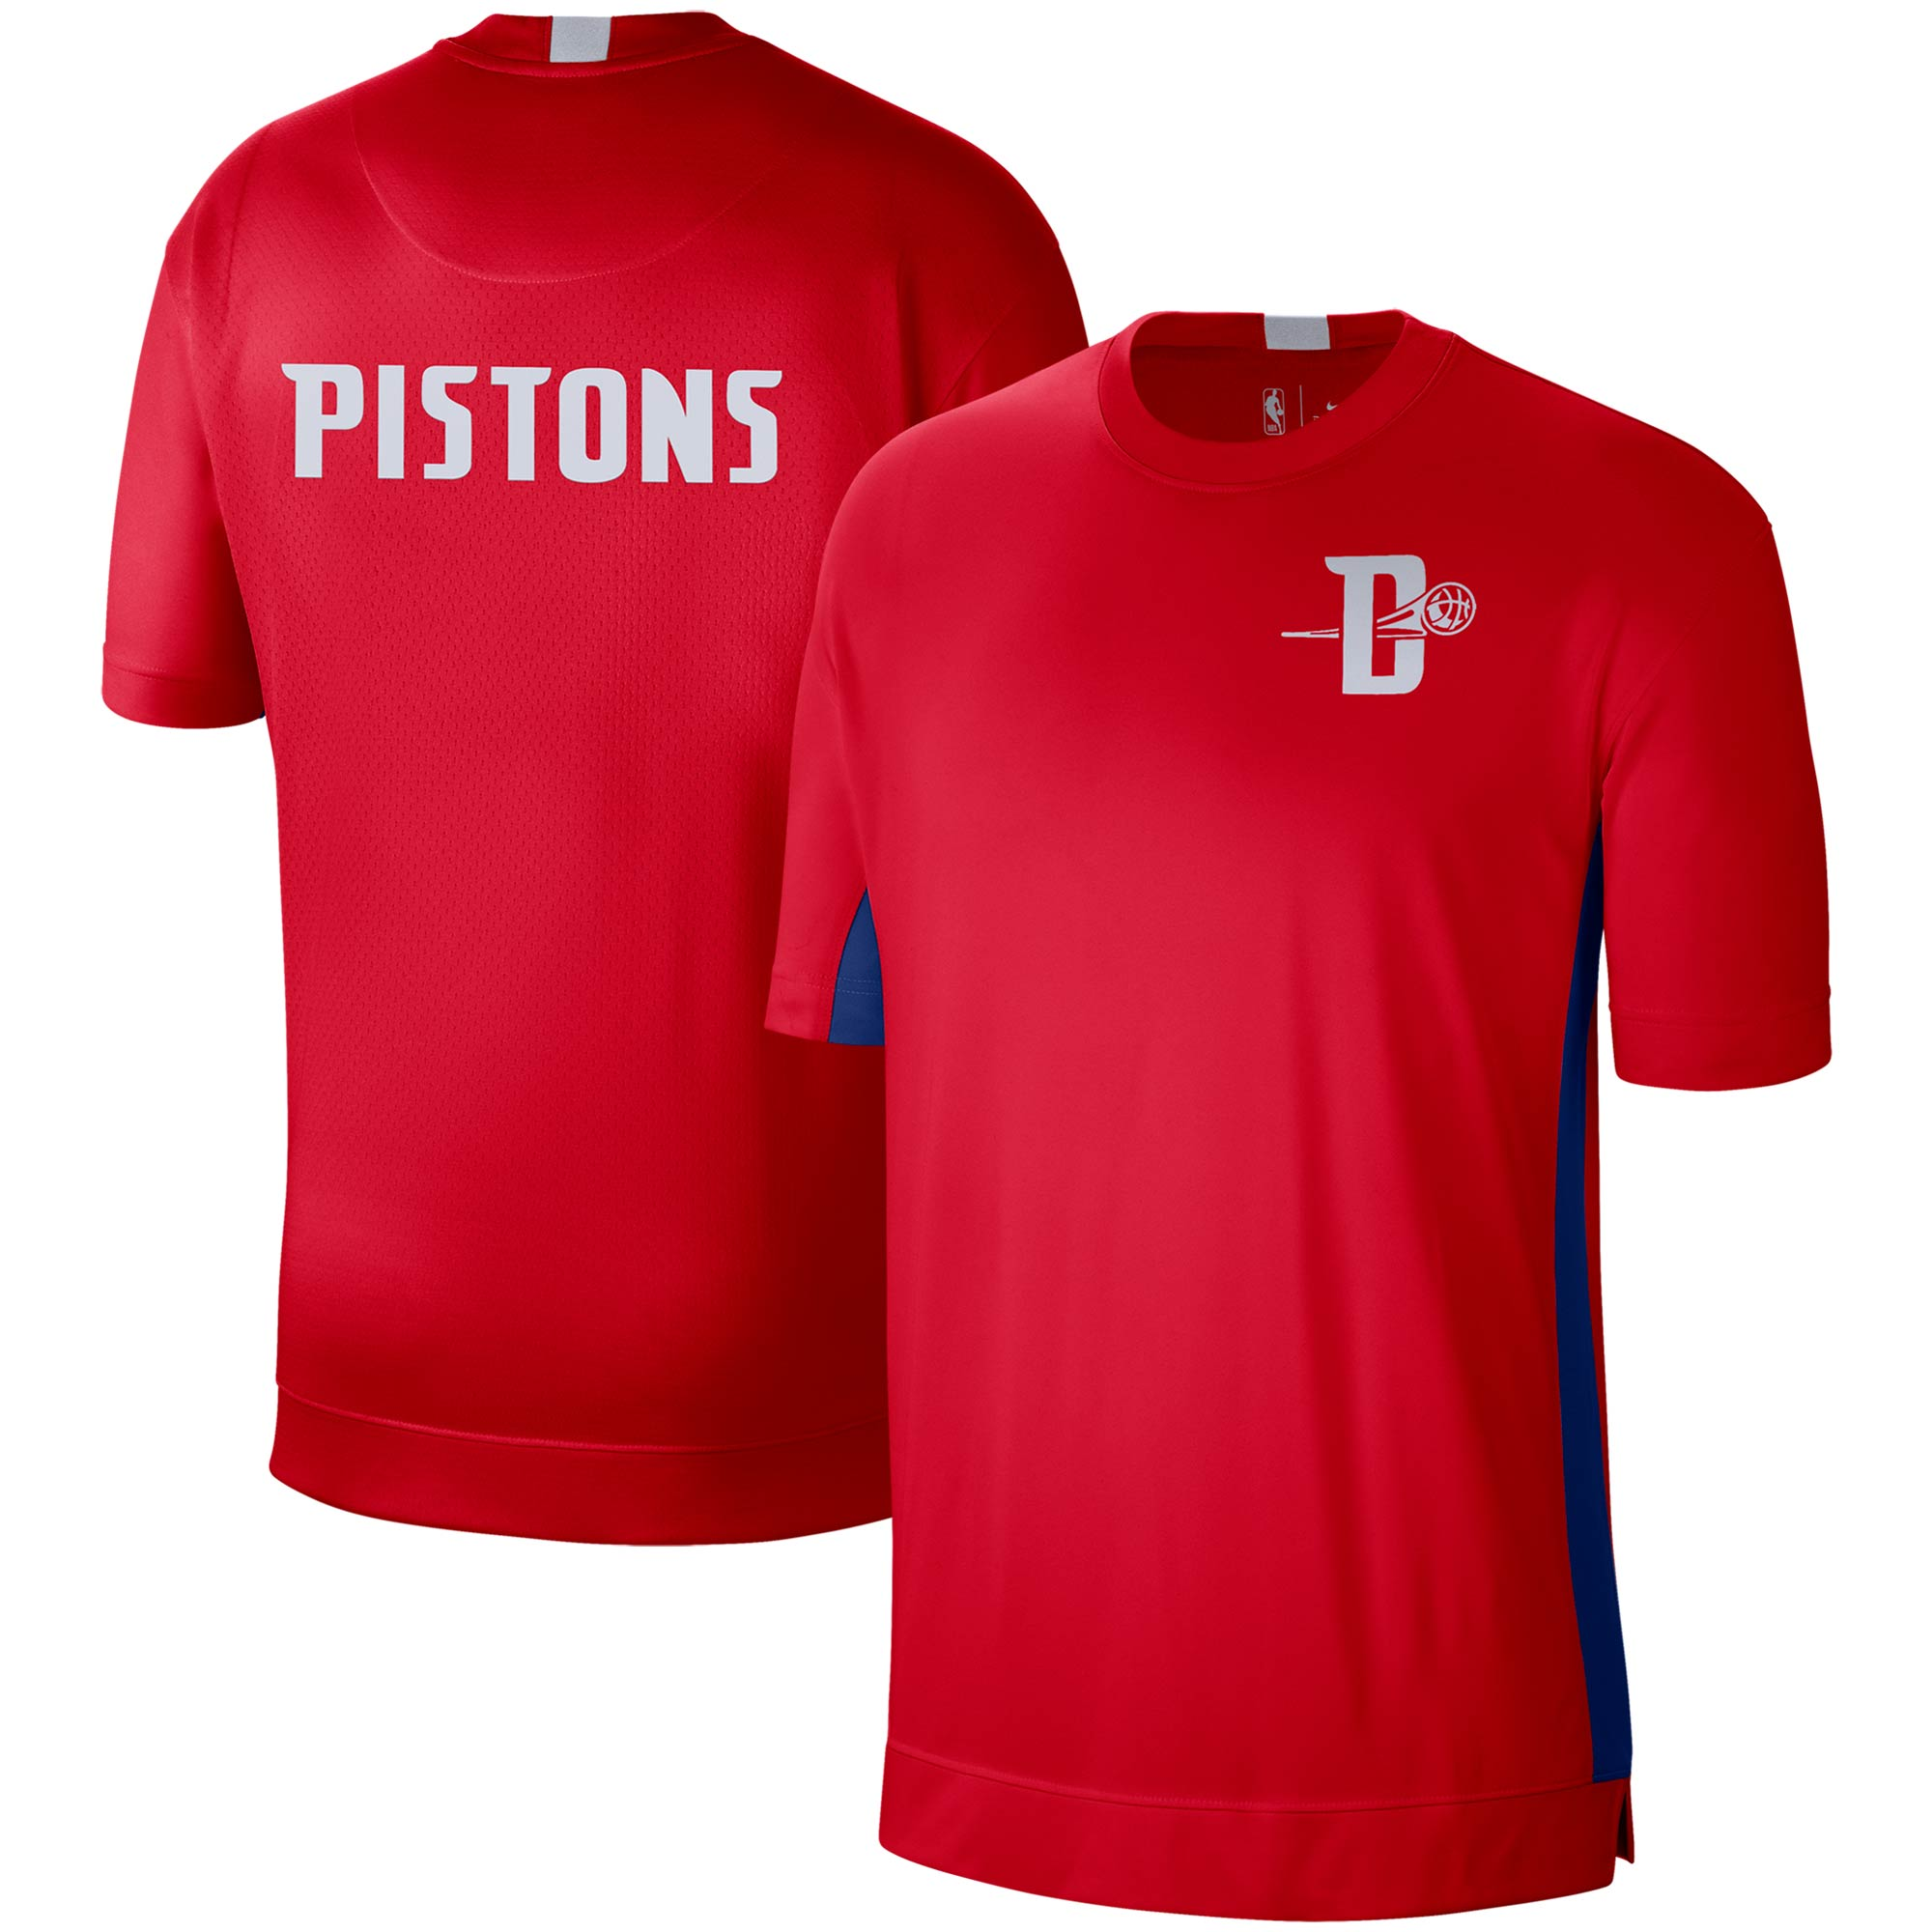 Detroit Pistons Nike City Edition 2.0 Shooting Performance T-Shirt - Red/Blue